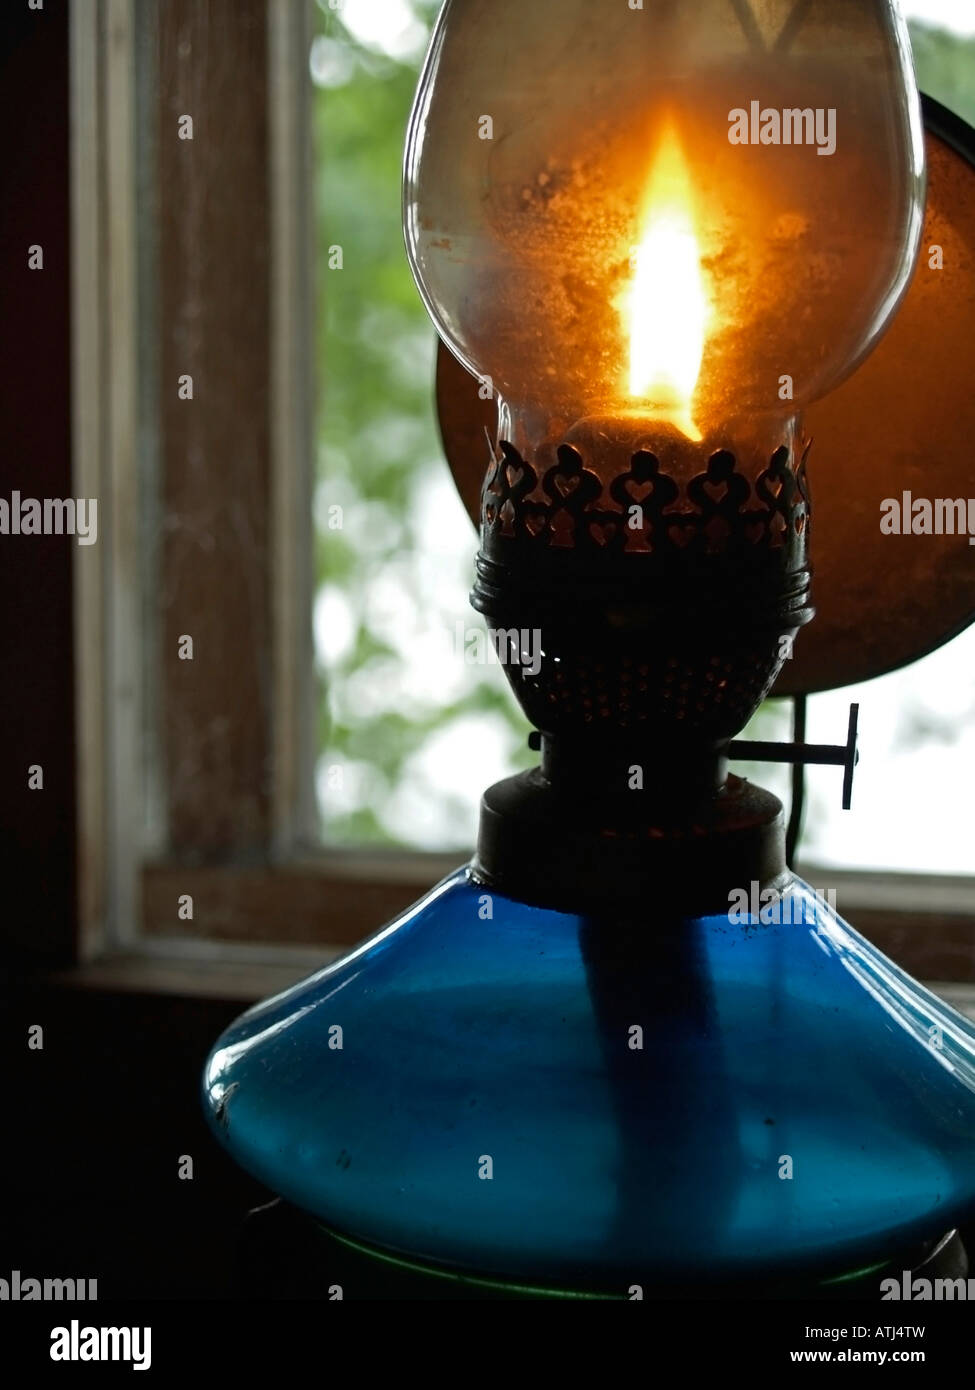 old oil lamp burning with bright flame at window - Stock Image